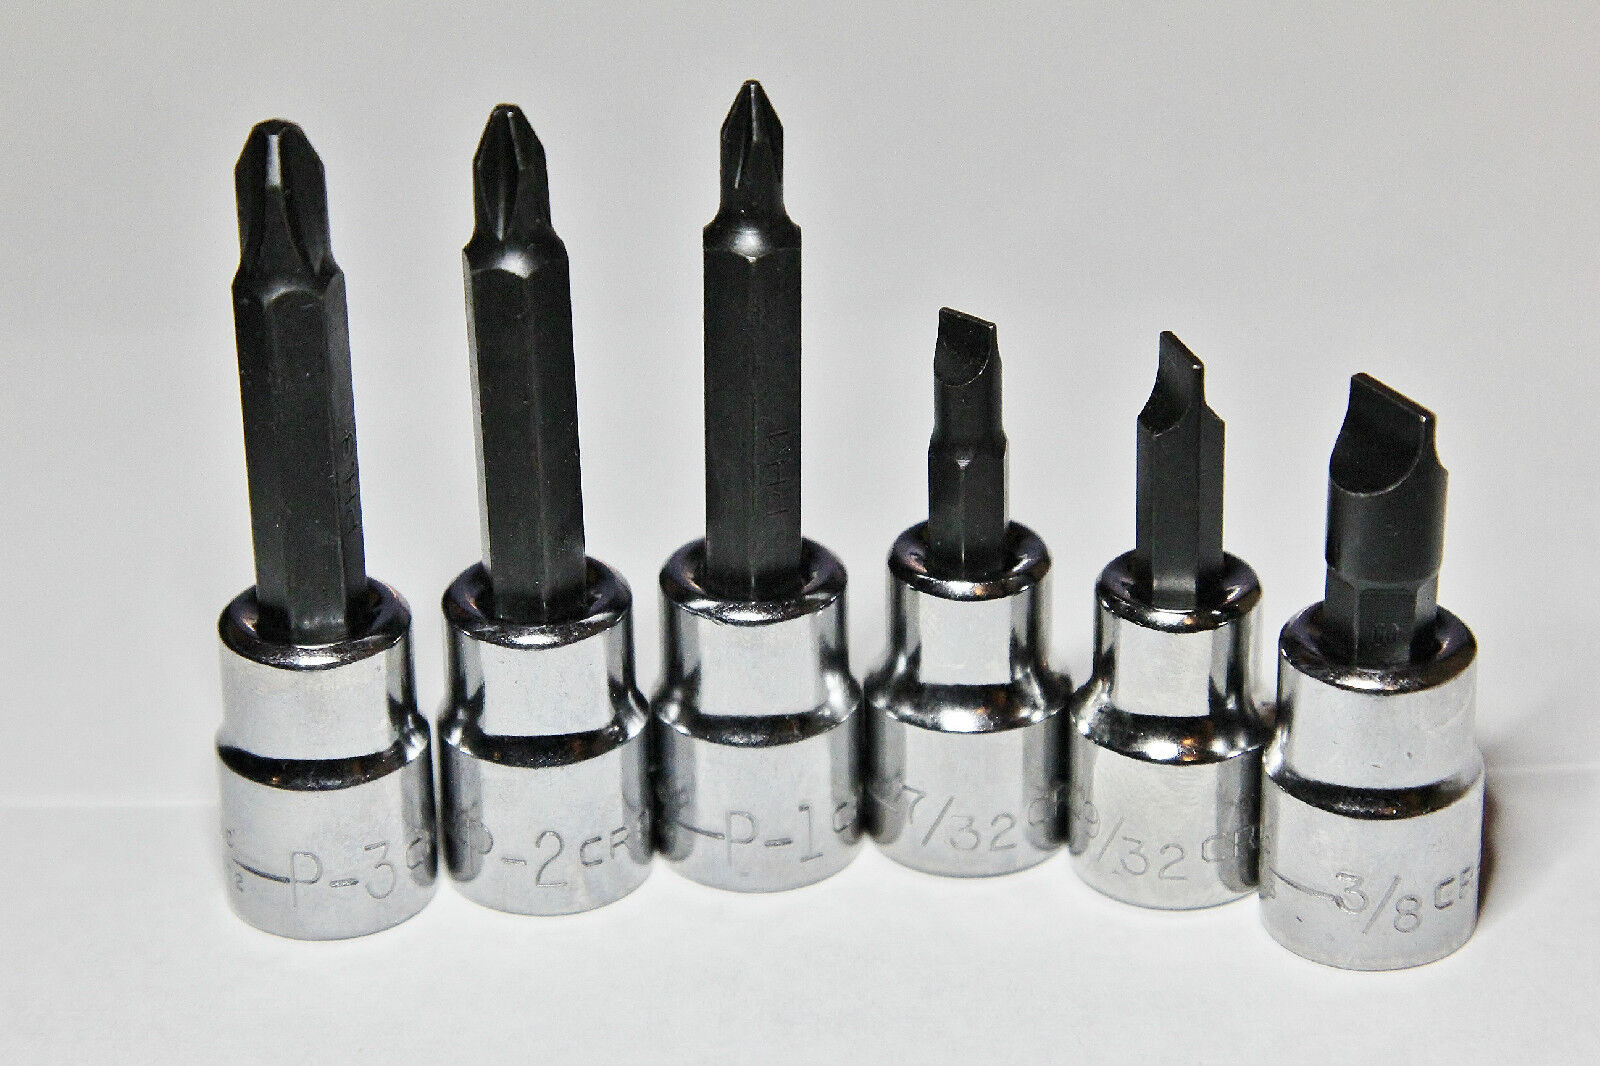 Craftsman 6 Piece  3/8 In. Drive Philips & Slotted Screwdriv